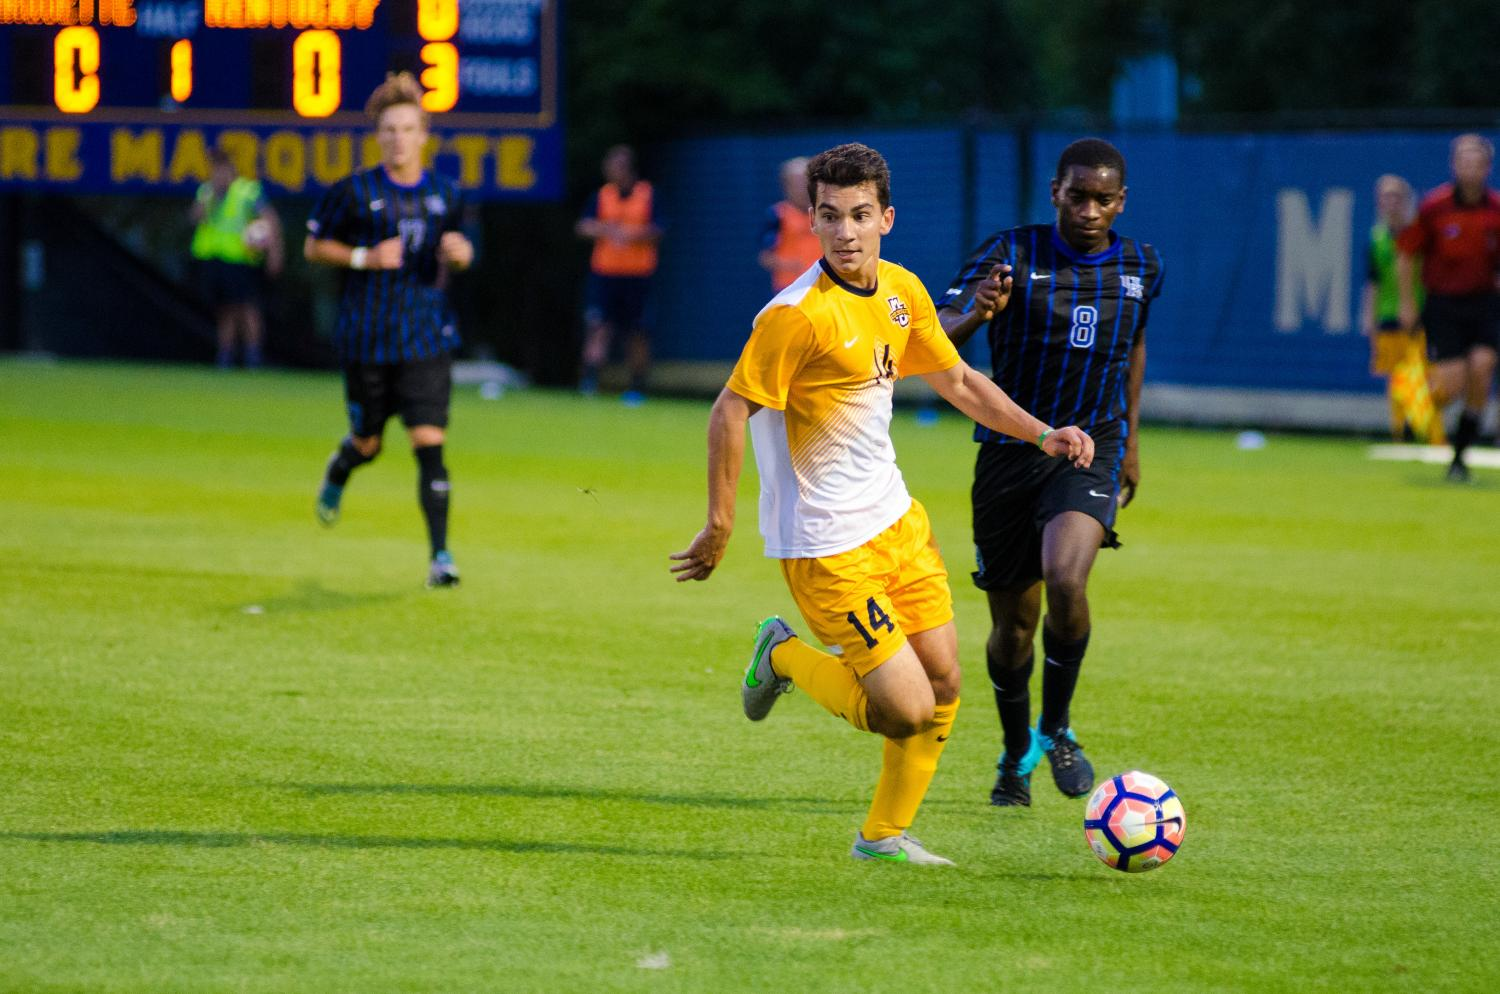 Marquette will get another shot at Kentucky this year, along with a host of other NCAA College Cup qualifiers.